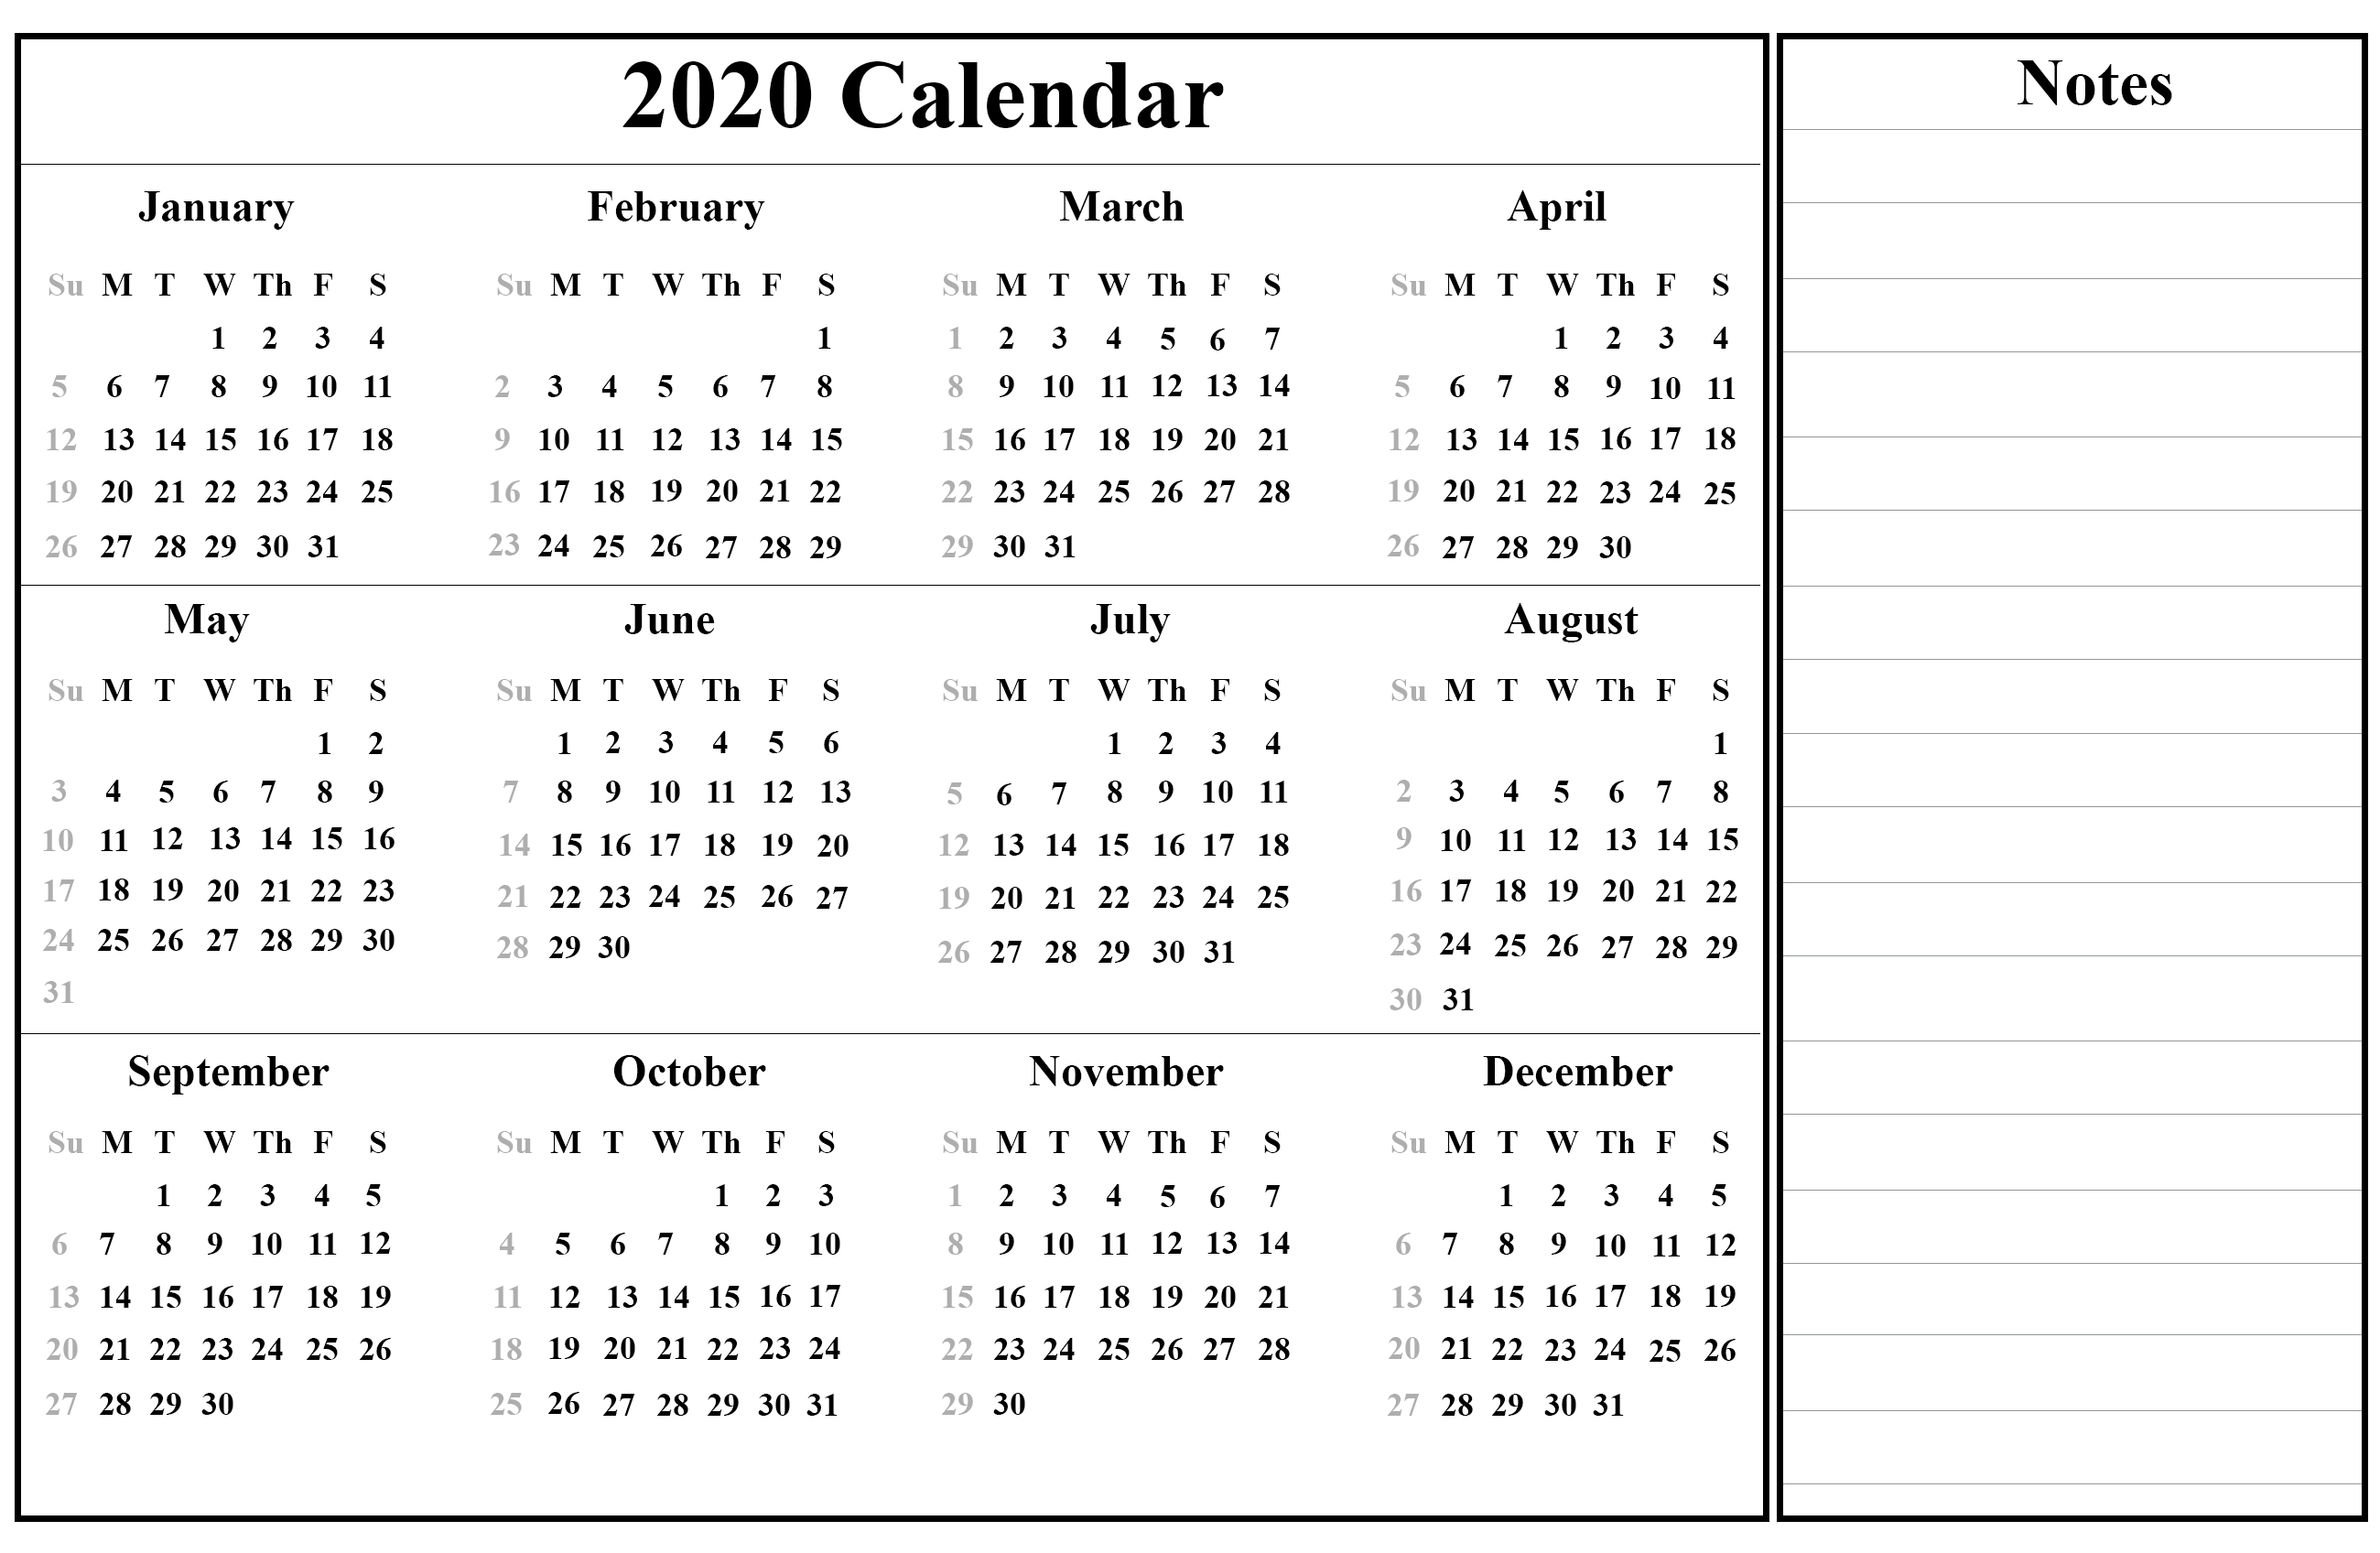 Free Printable Australia Calendar 2020 In Pdf, Excel & Word Format throughout Free Printable 2020 Monday To Friday Australian Calender